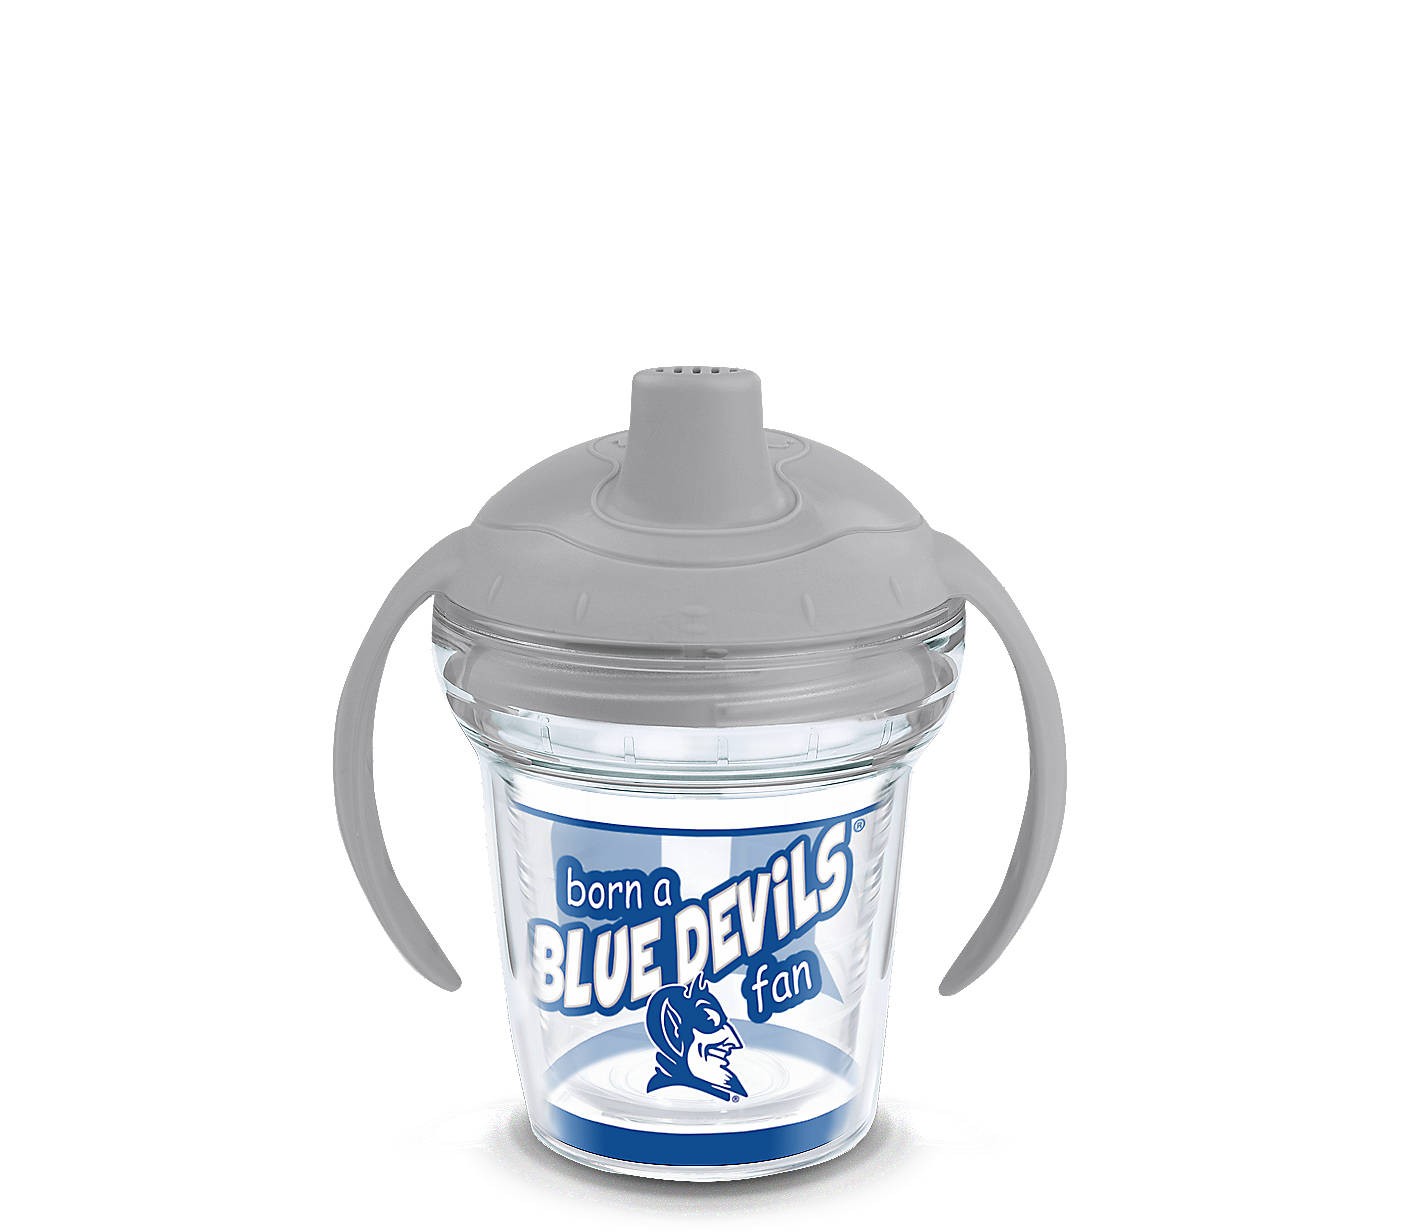 Duke-sippy-cup